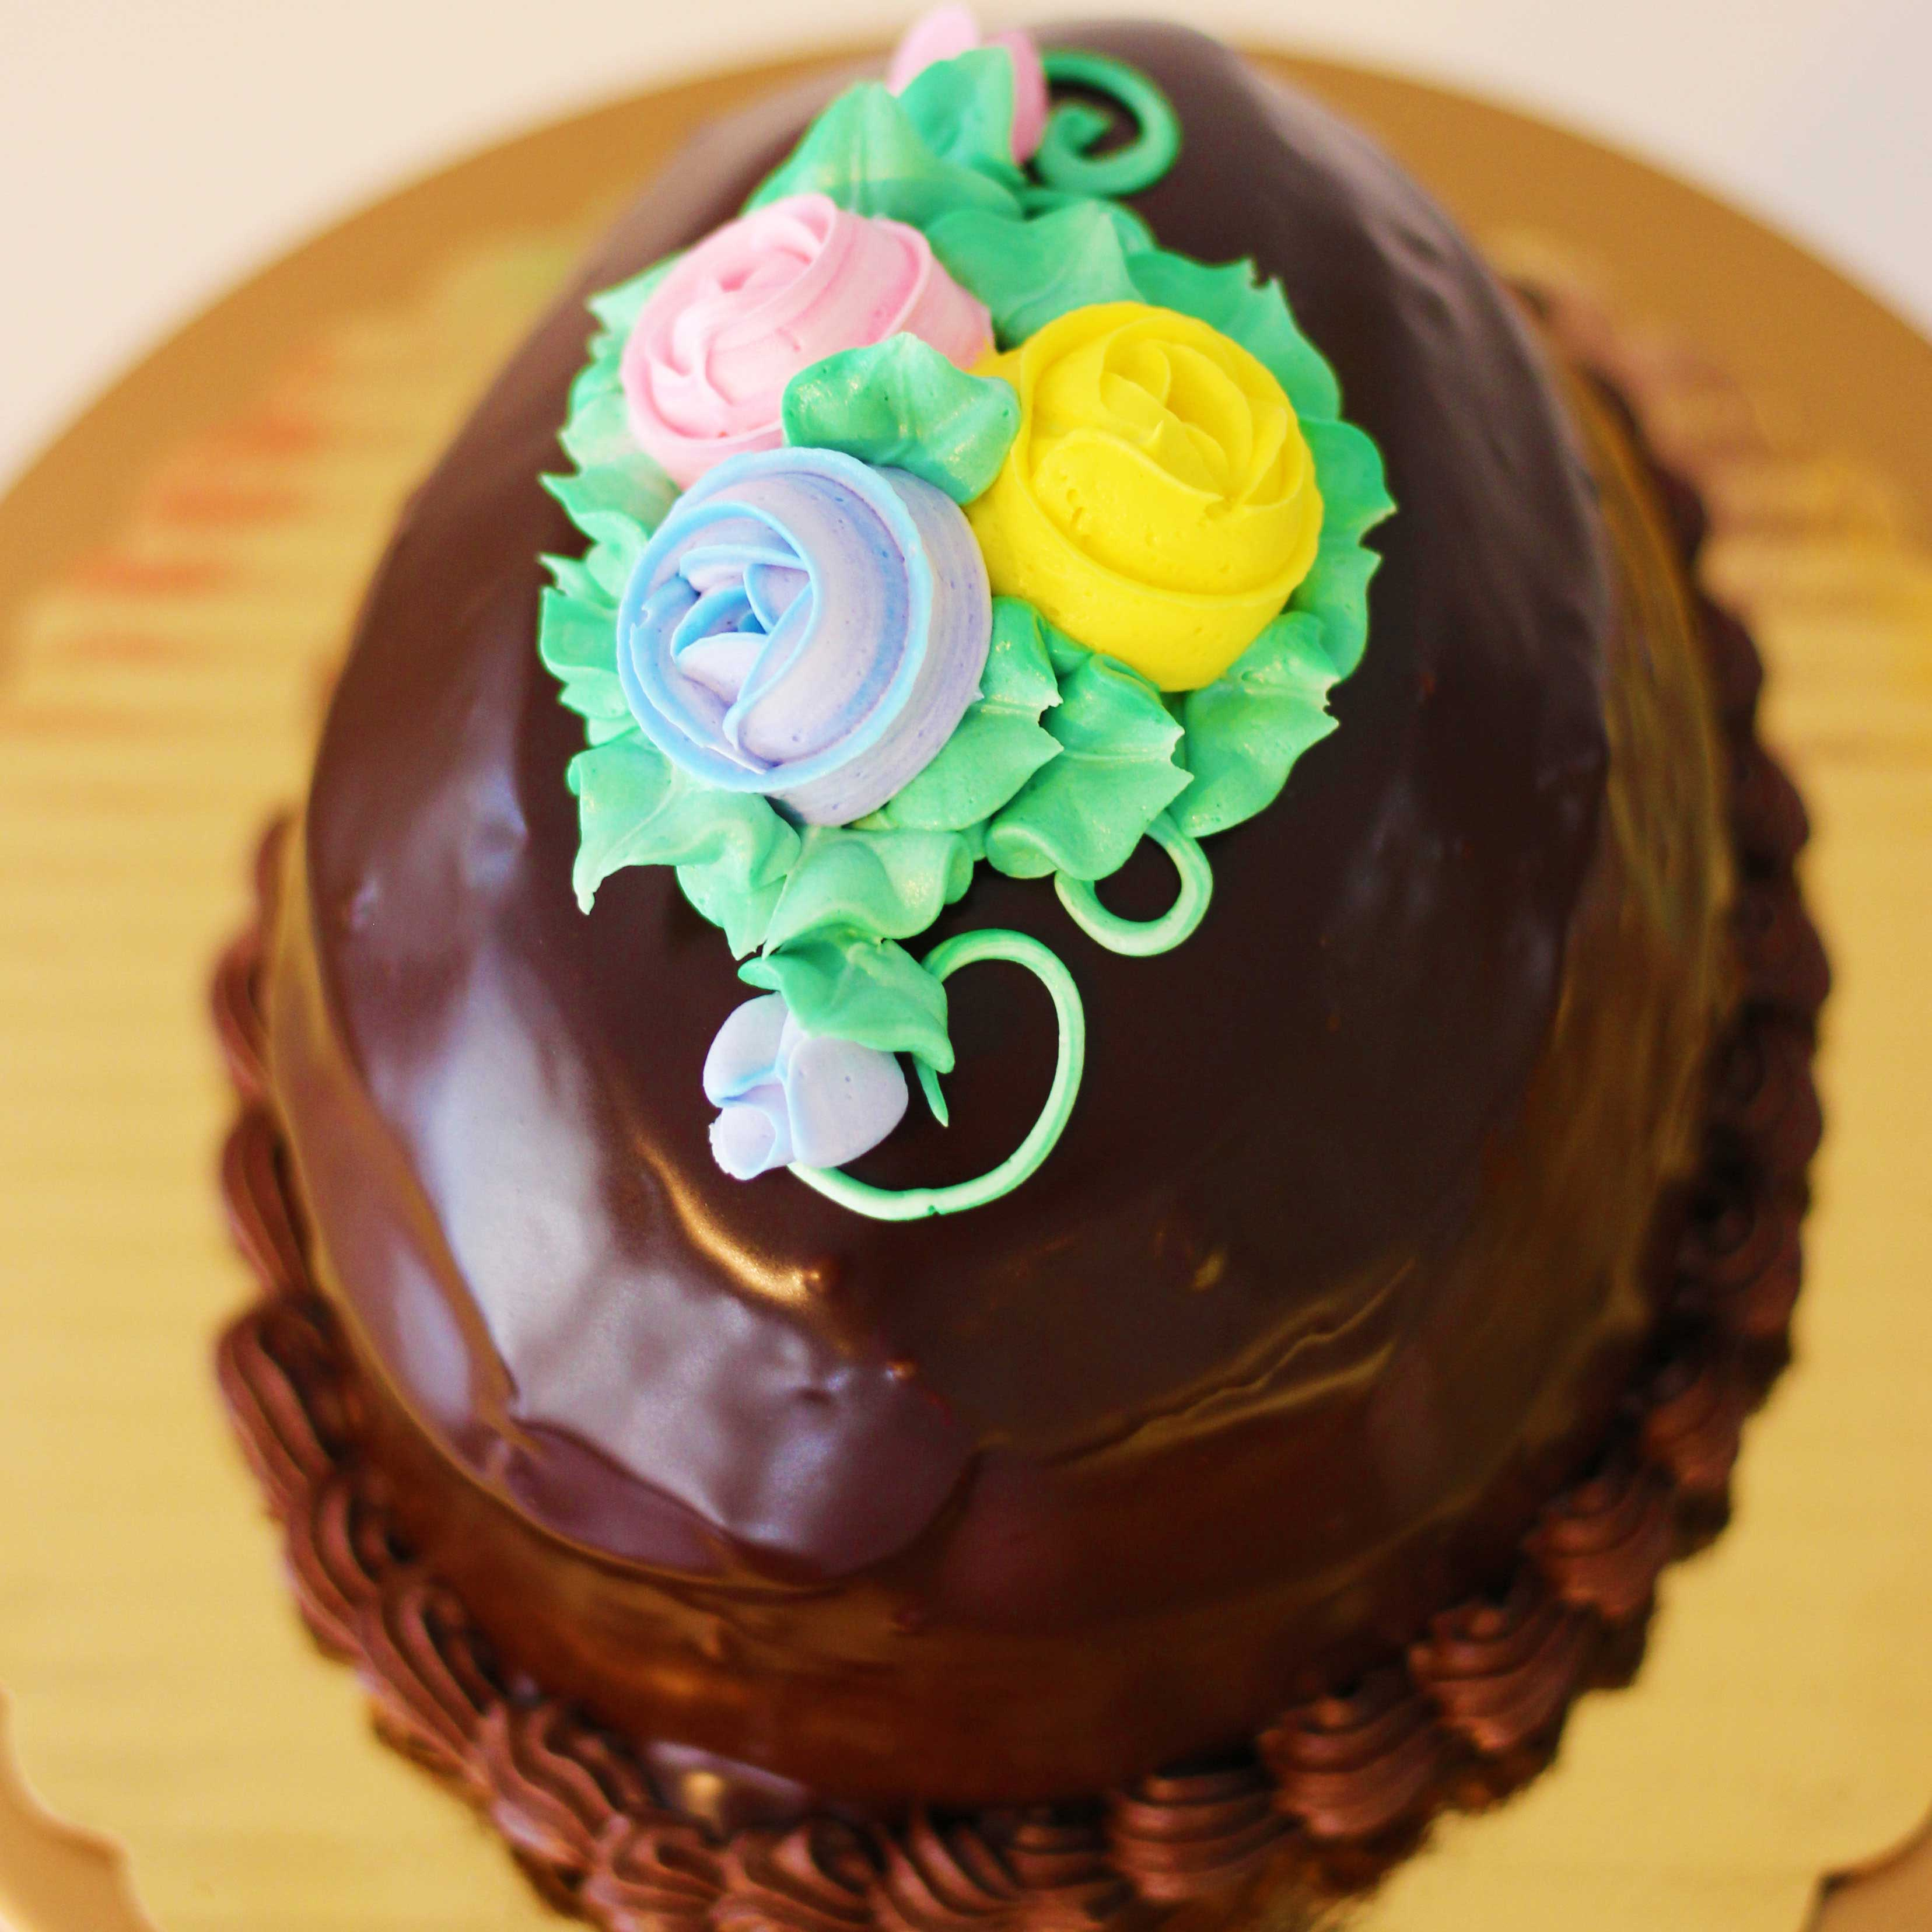 Chocolate Easter Egg by French Bakery and Restaurant in Northern New Jersey